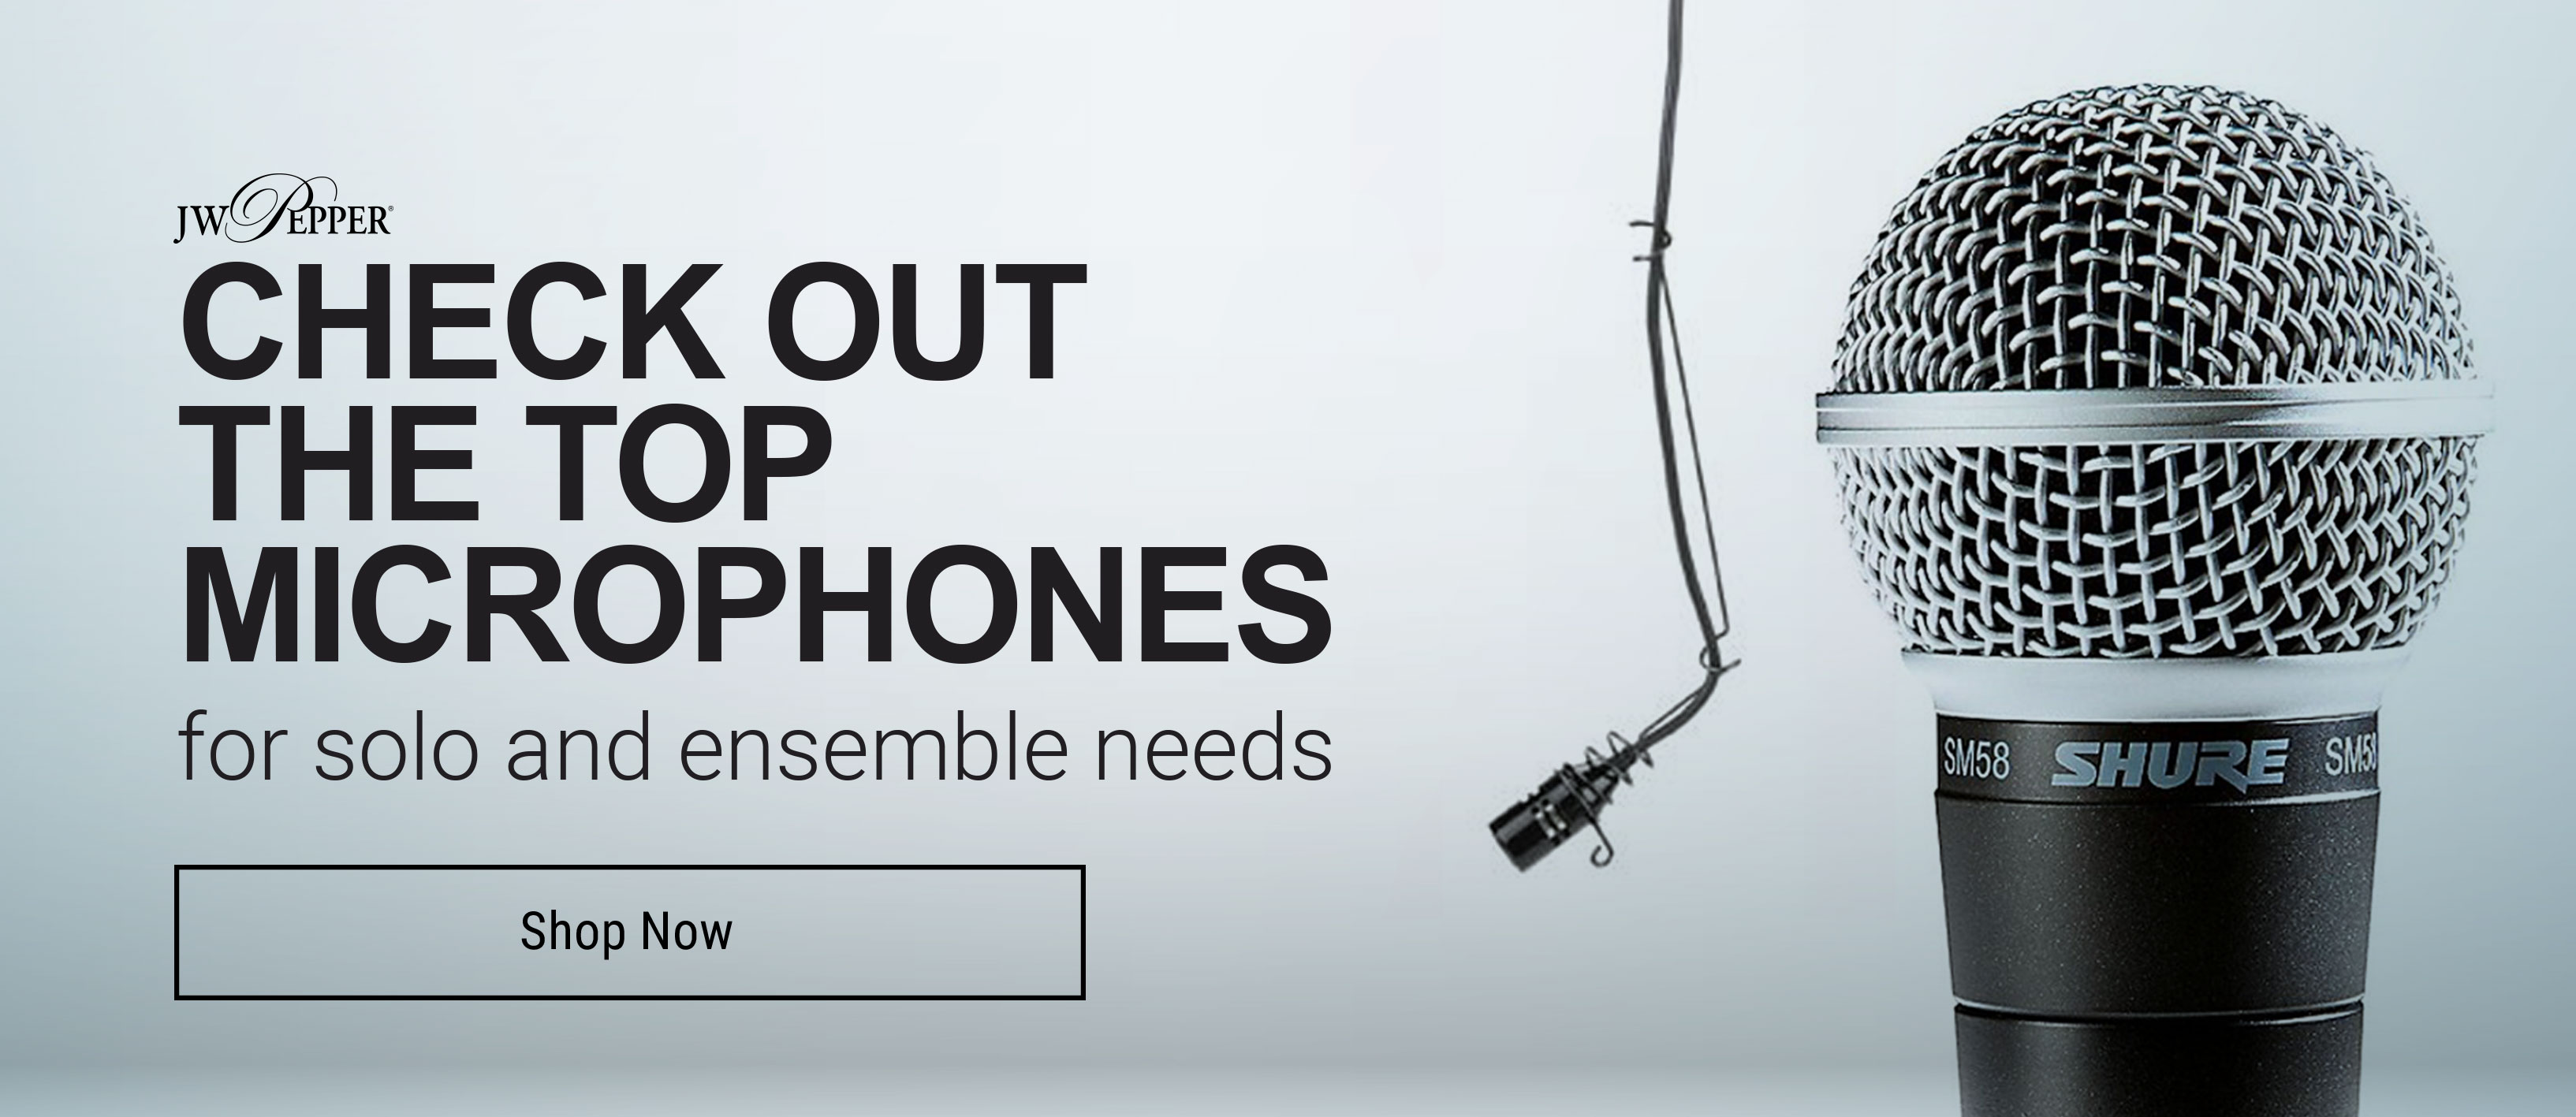 Shop now for the best microphones for solo and ensemble music needs.